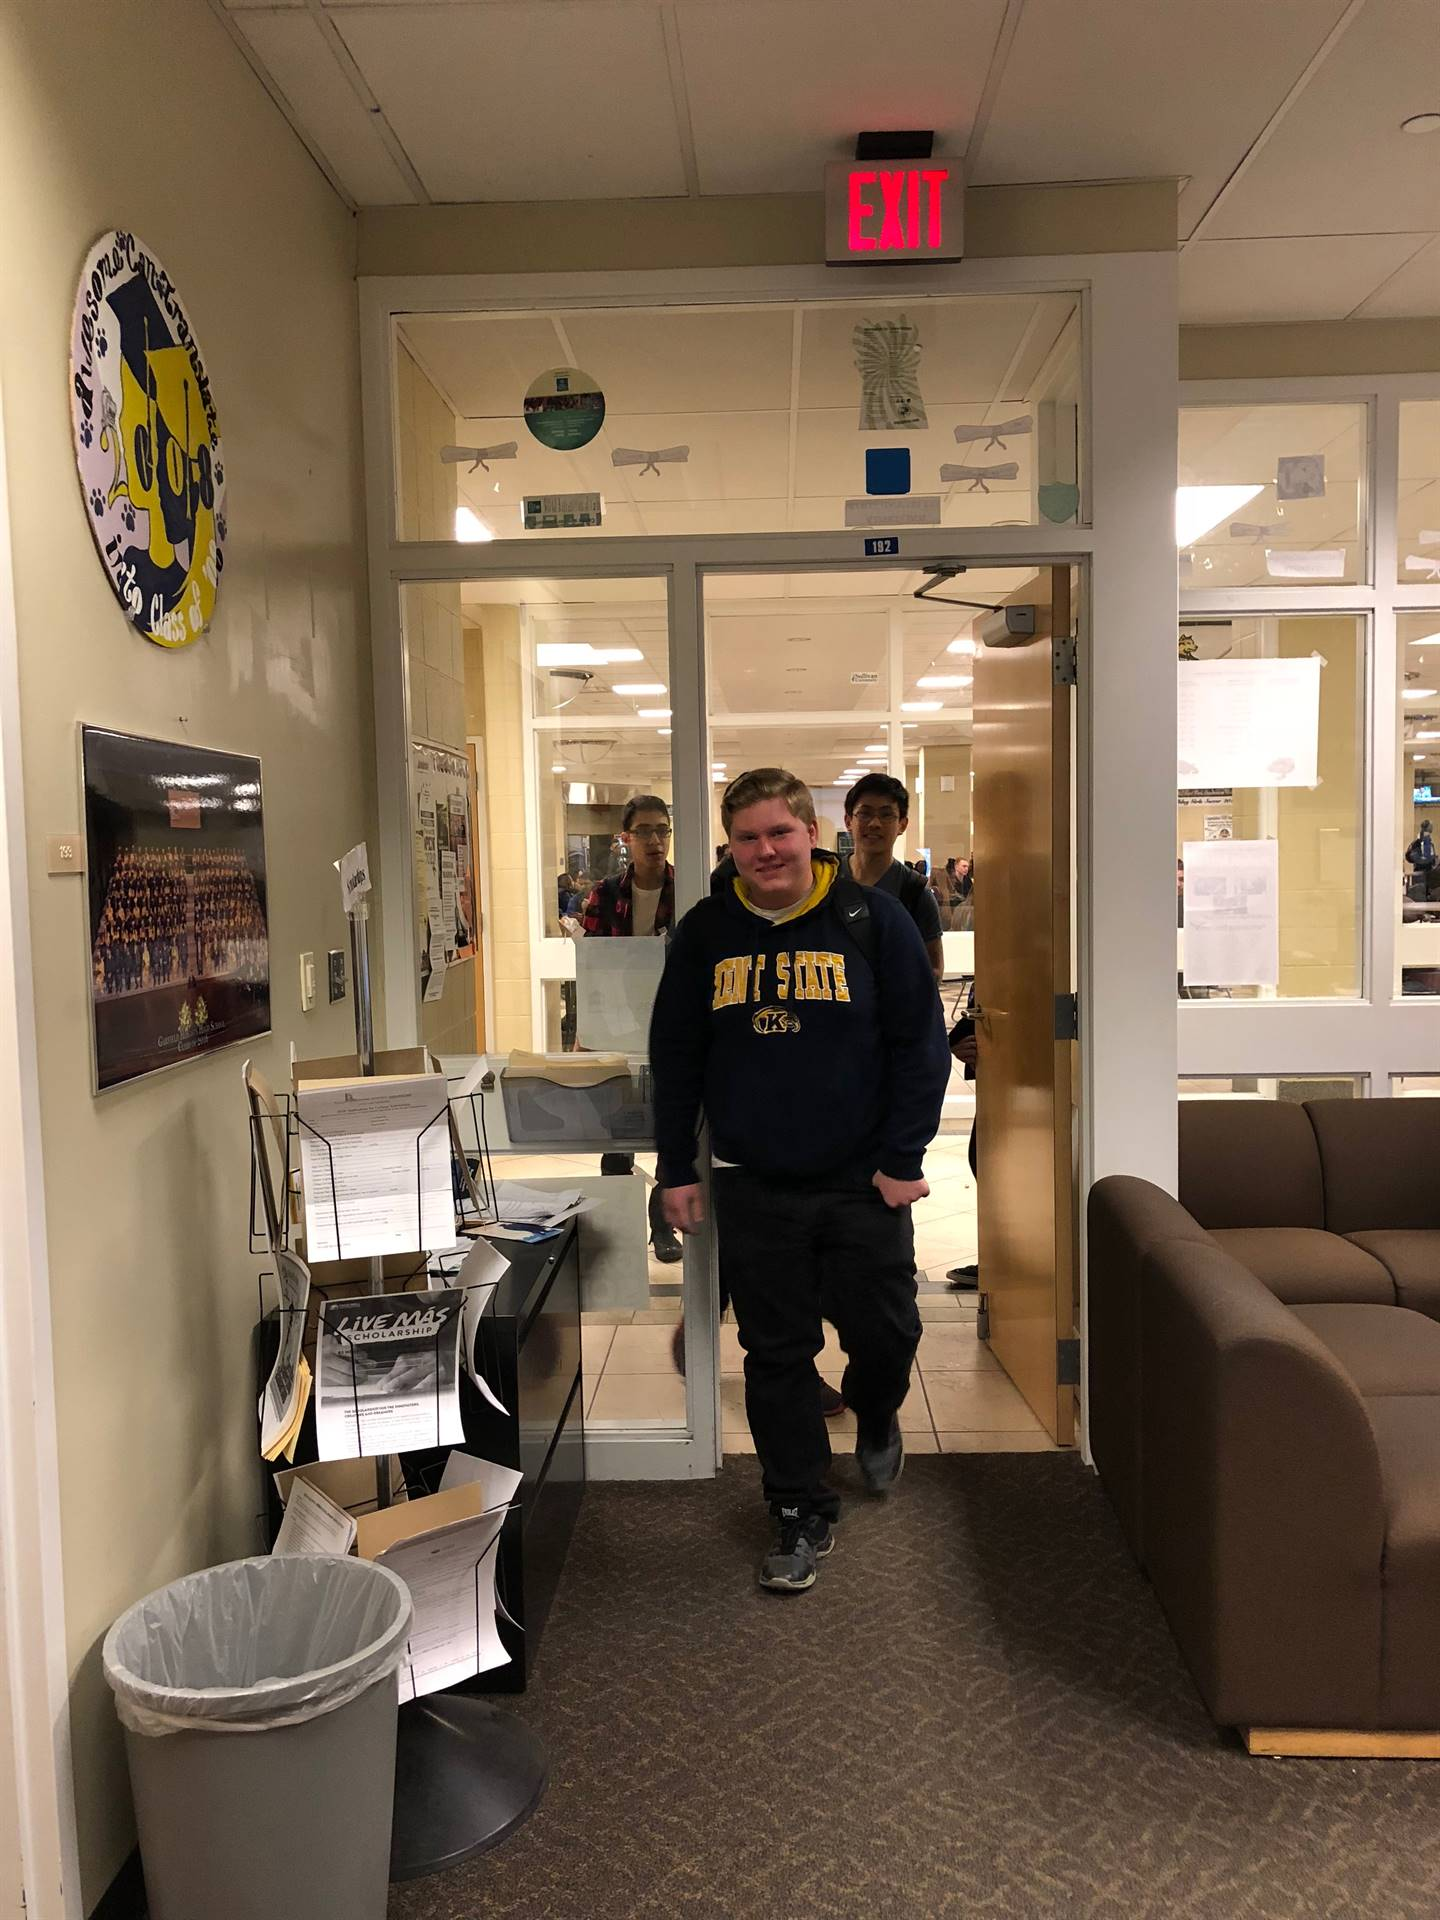 students entering guidance office to take Top 10 pictures